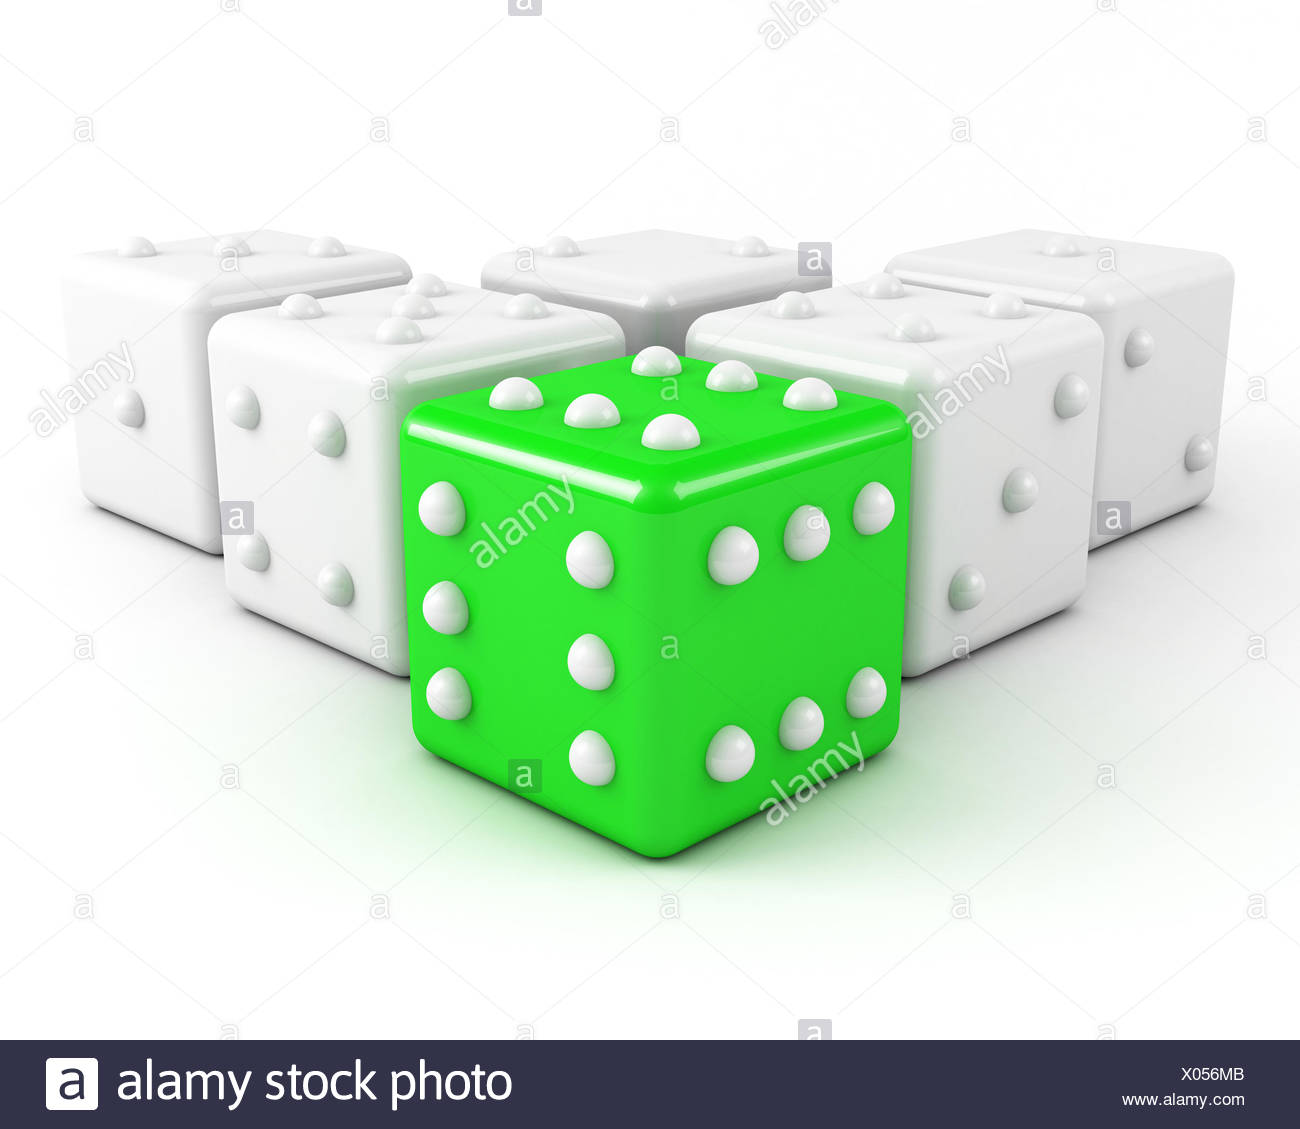 green leading dice. winning leadership concept - Stock Image